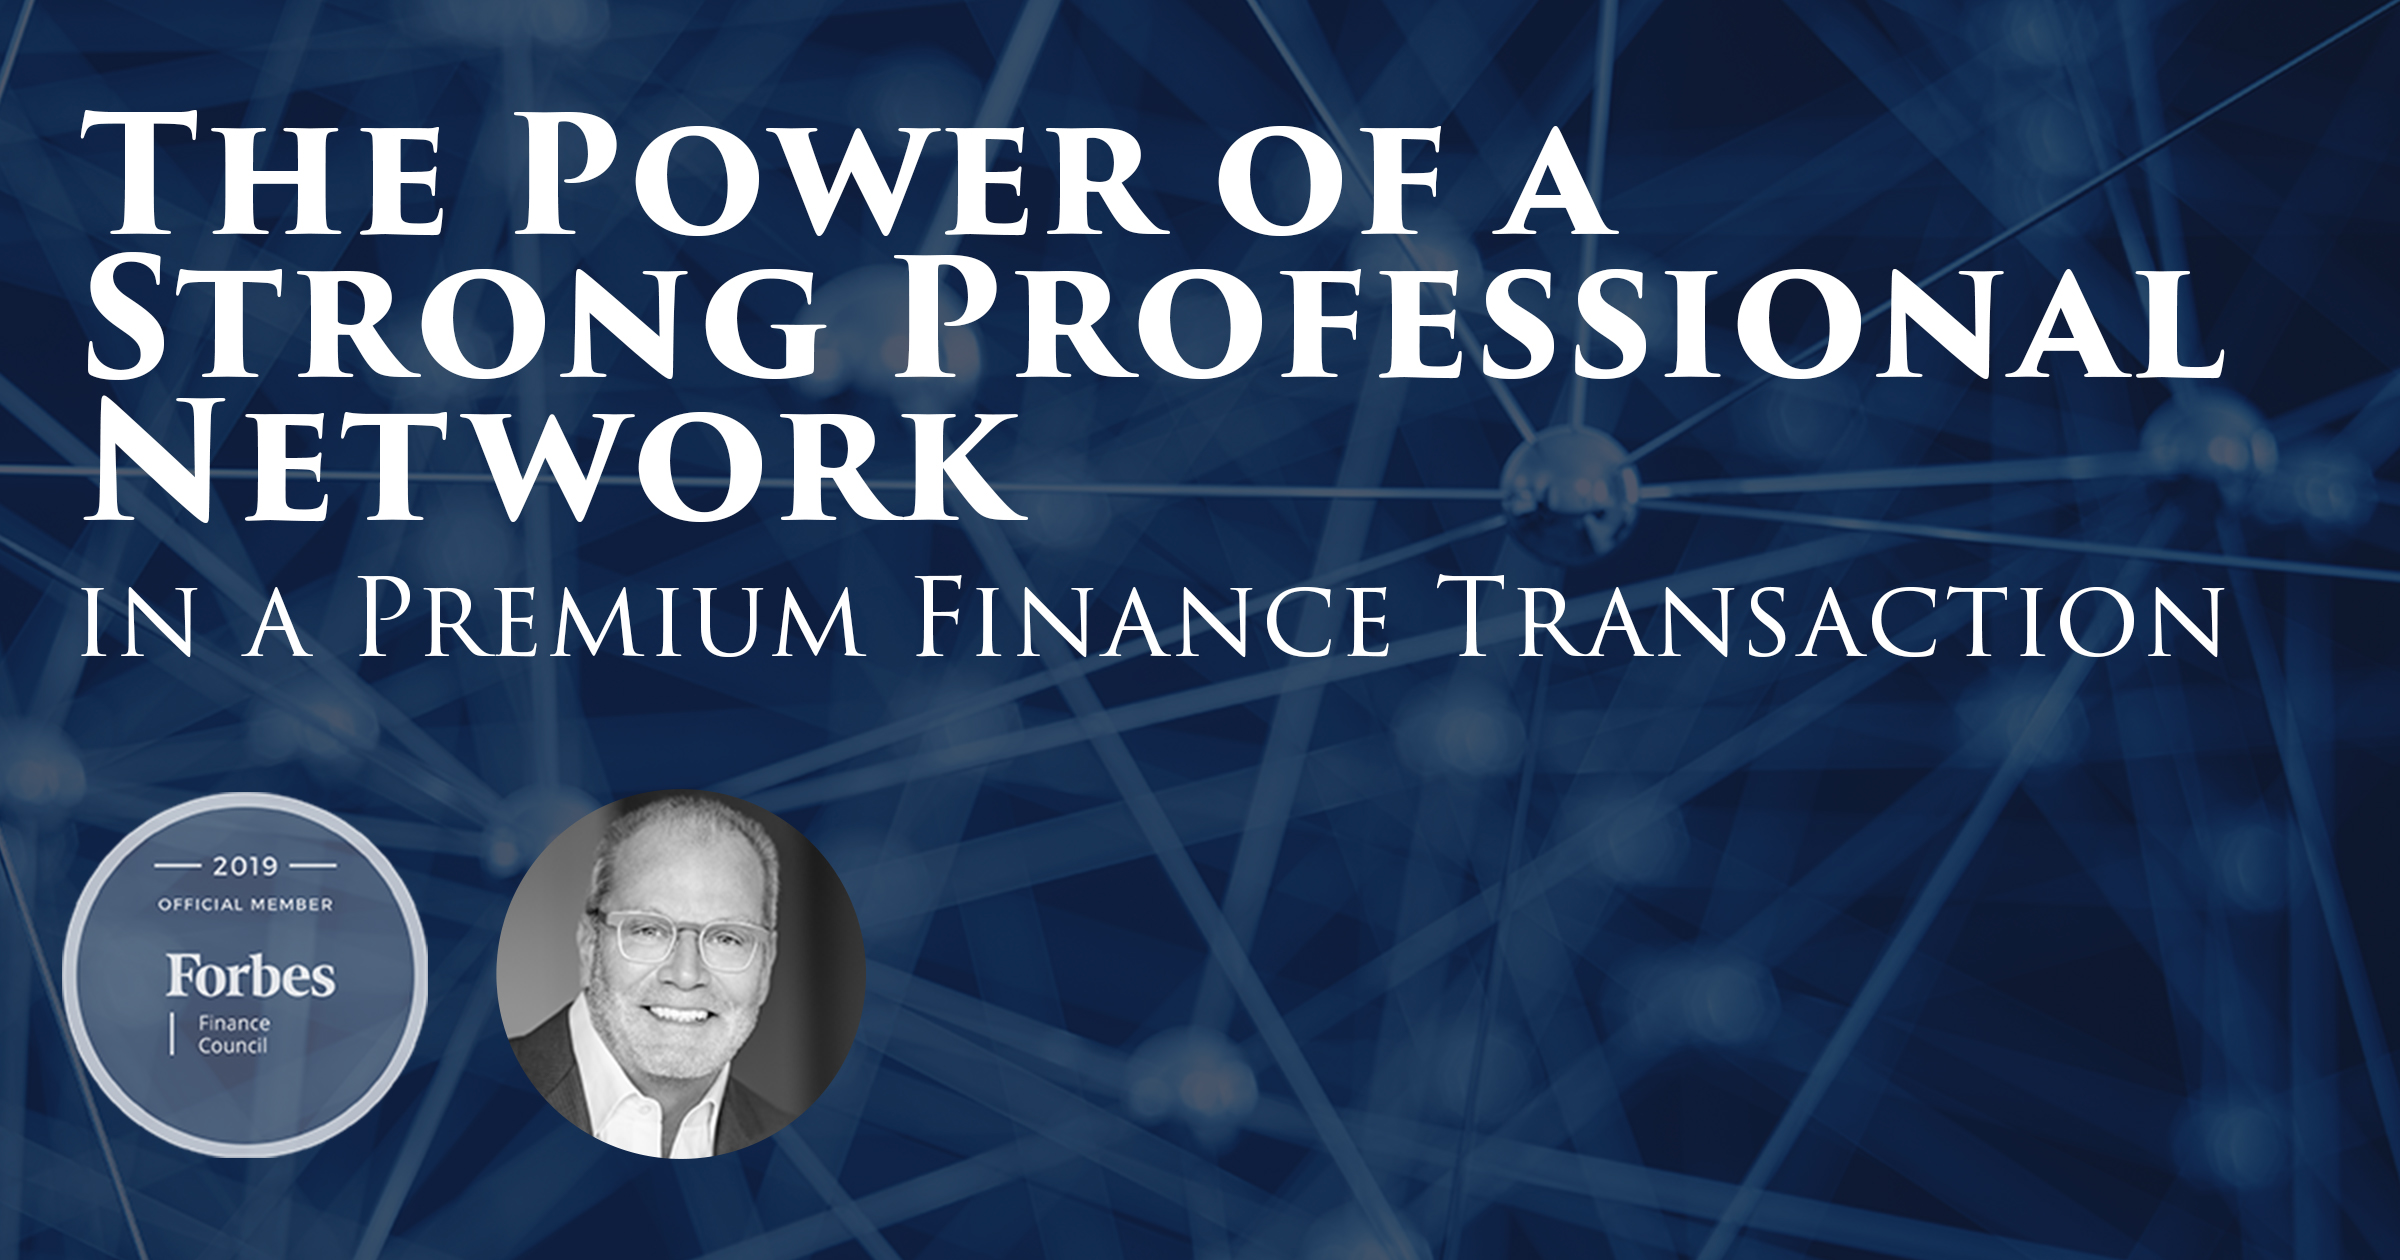 The Power Of A Strong Professional Network In A Premium Finance Transaction